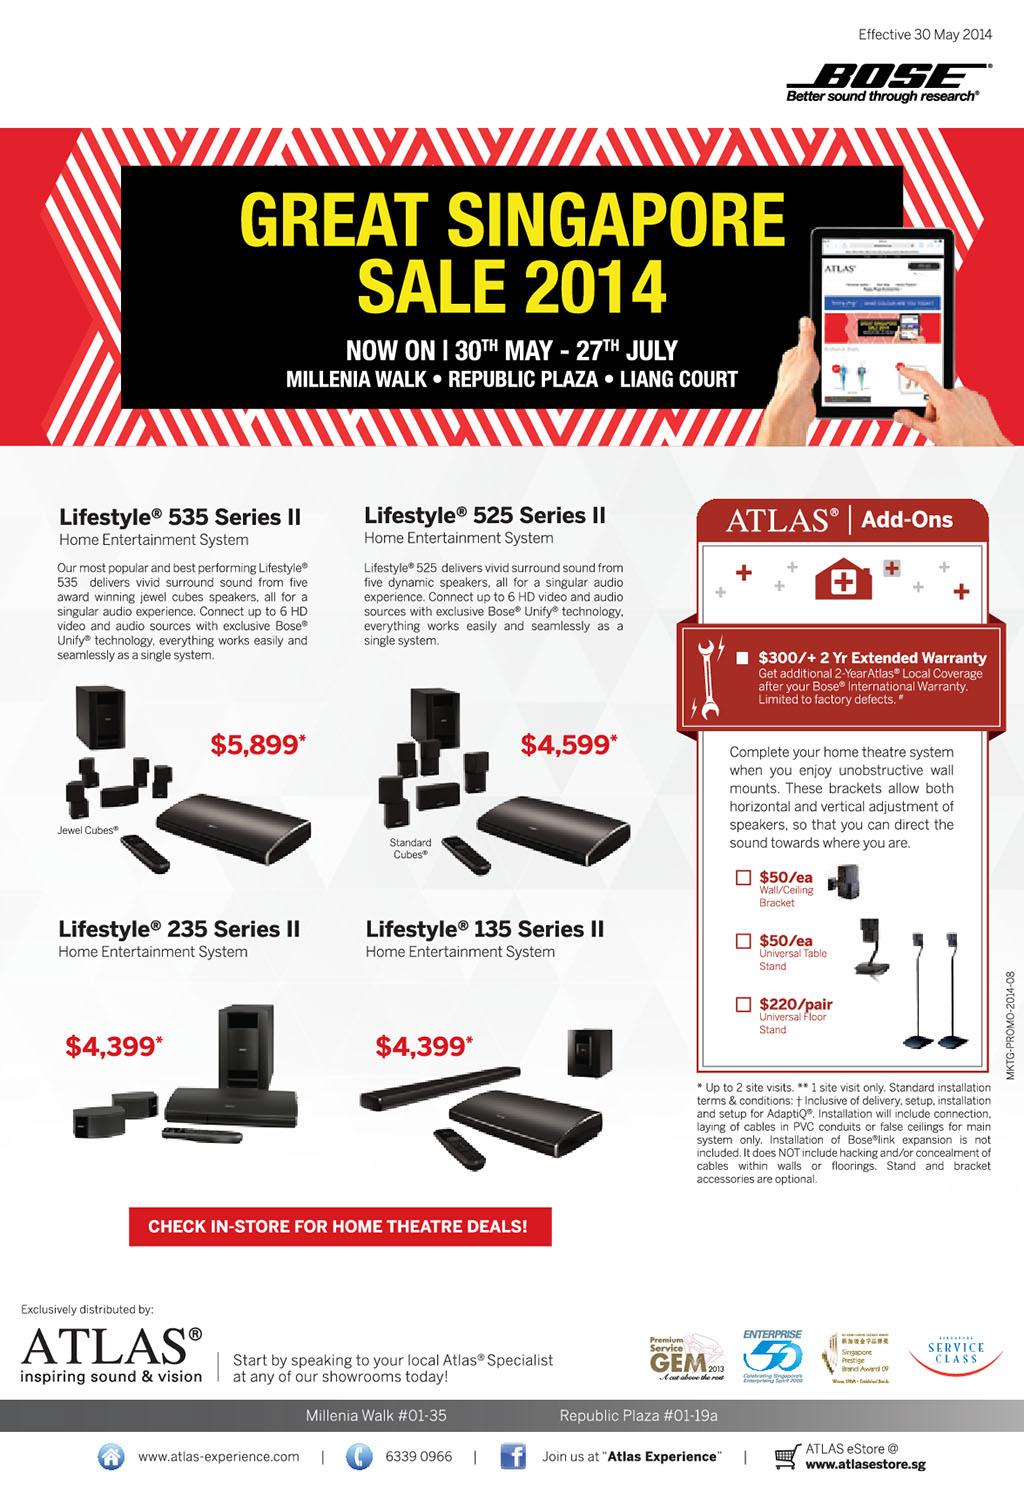 Bose Home Theatre, Speakers & Headphones GSS 2014 Sale Till July